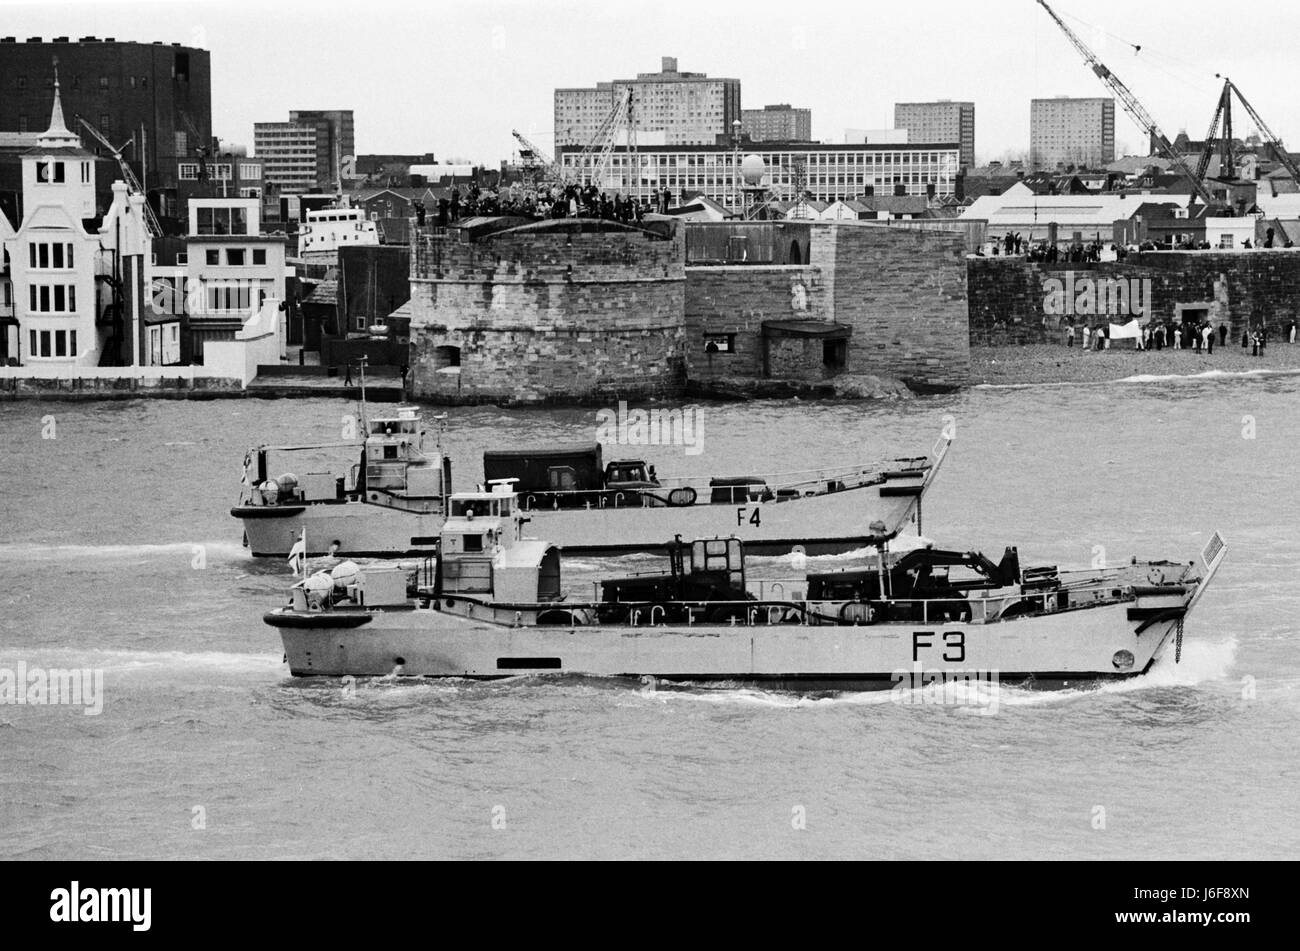 AJAXNETPHOTO.1982. PORTSMOUTH, ENGLAND. - HMS FEARLESS LANDING CRAFT LEAVE PORTSMOUTH BEHIND THE MOTHER SHIP EN - Stock Image